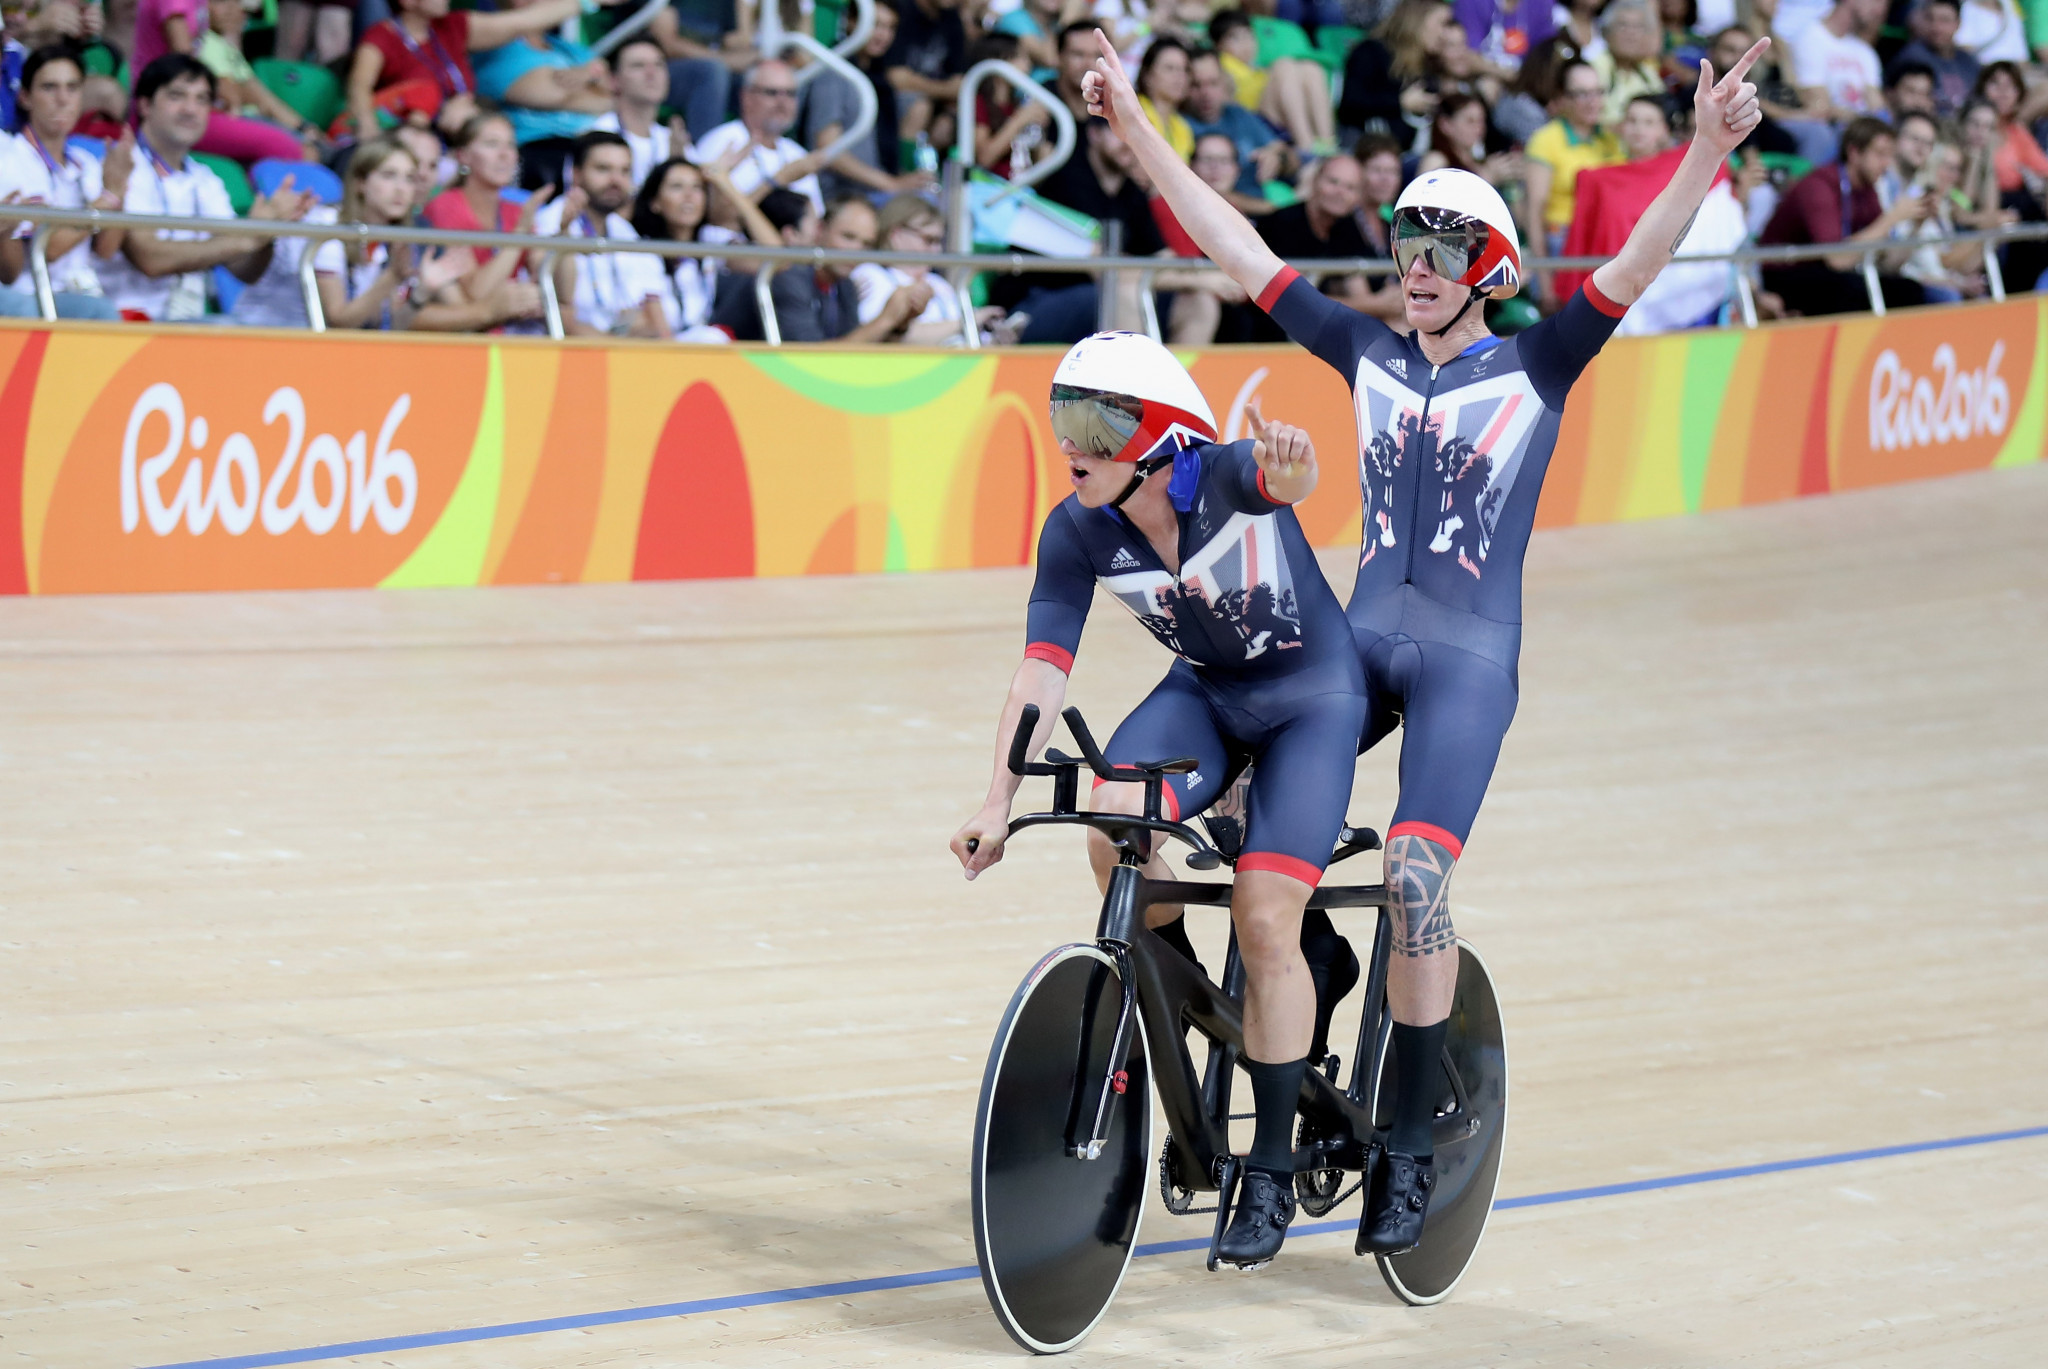 British Cycling launches search for Paris 2024 Paralympians